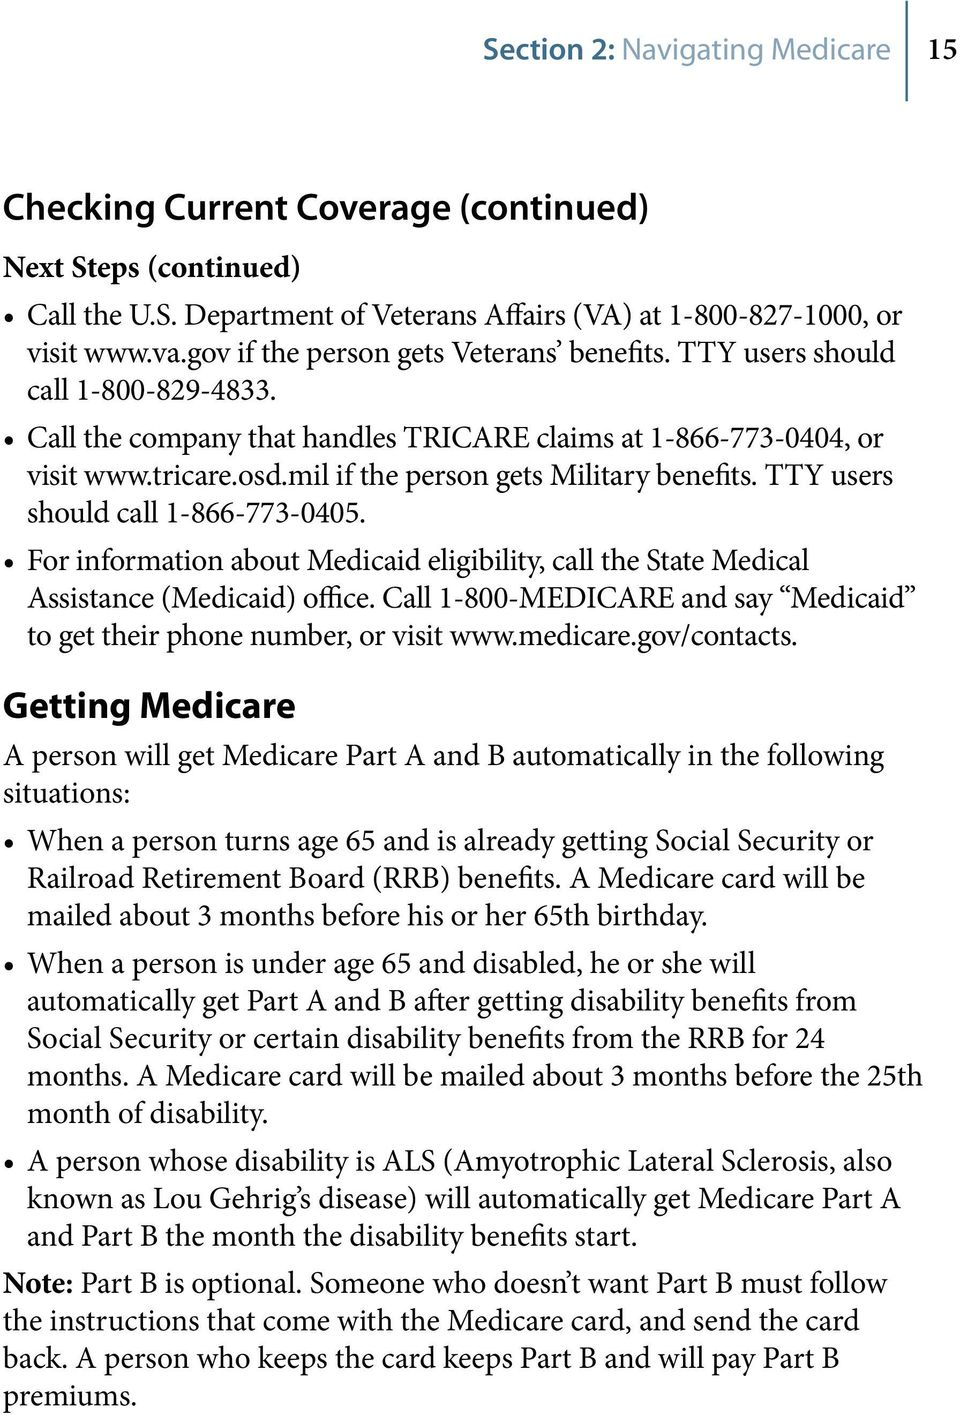 mil if the person gets Military benefits. TTY users should call 1-866-773-0405. For information about Medicaid eligibility, call the State Medical Assistance (Medicaid) office.